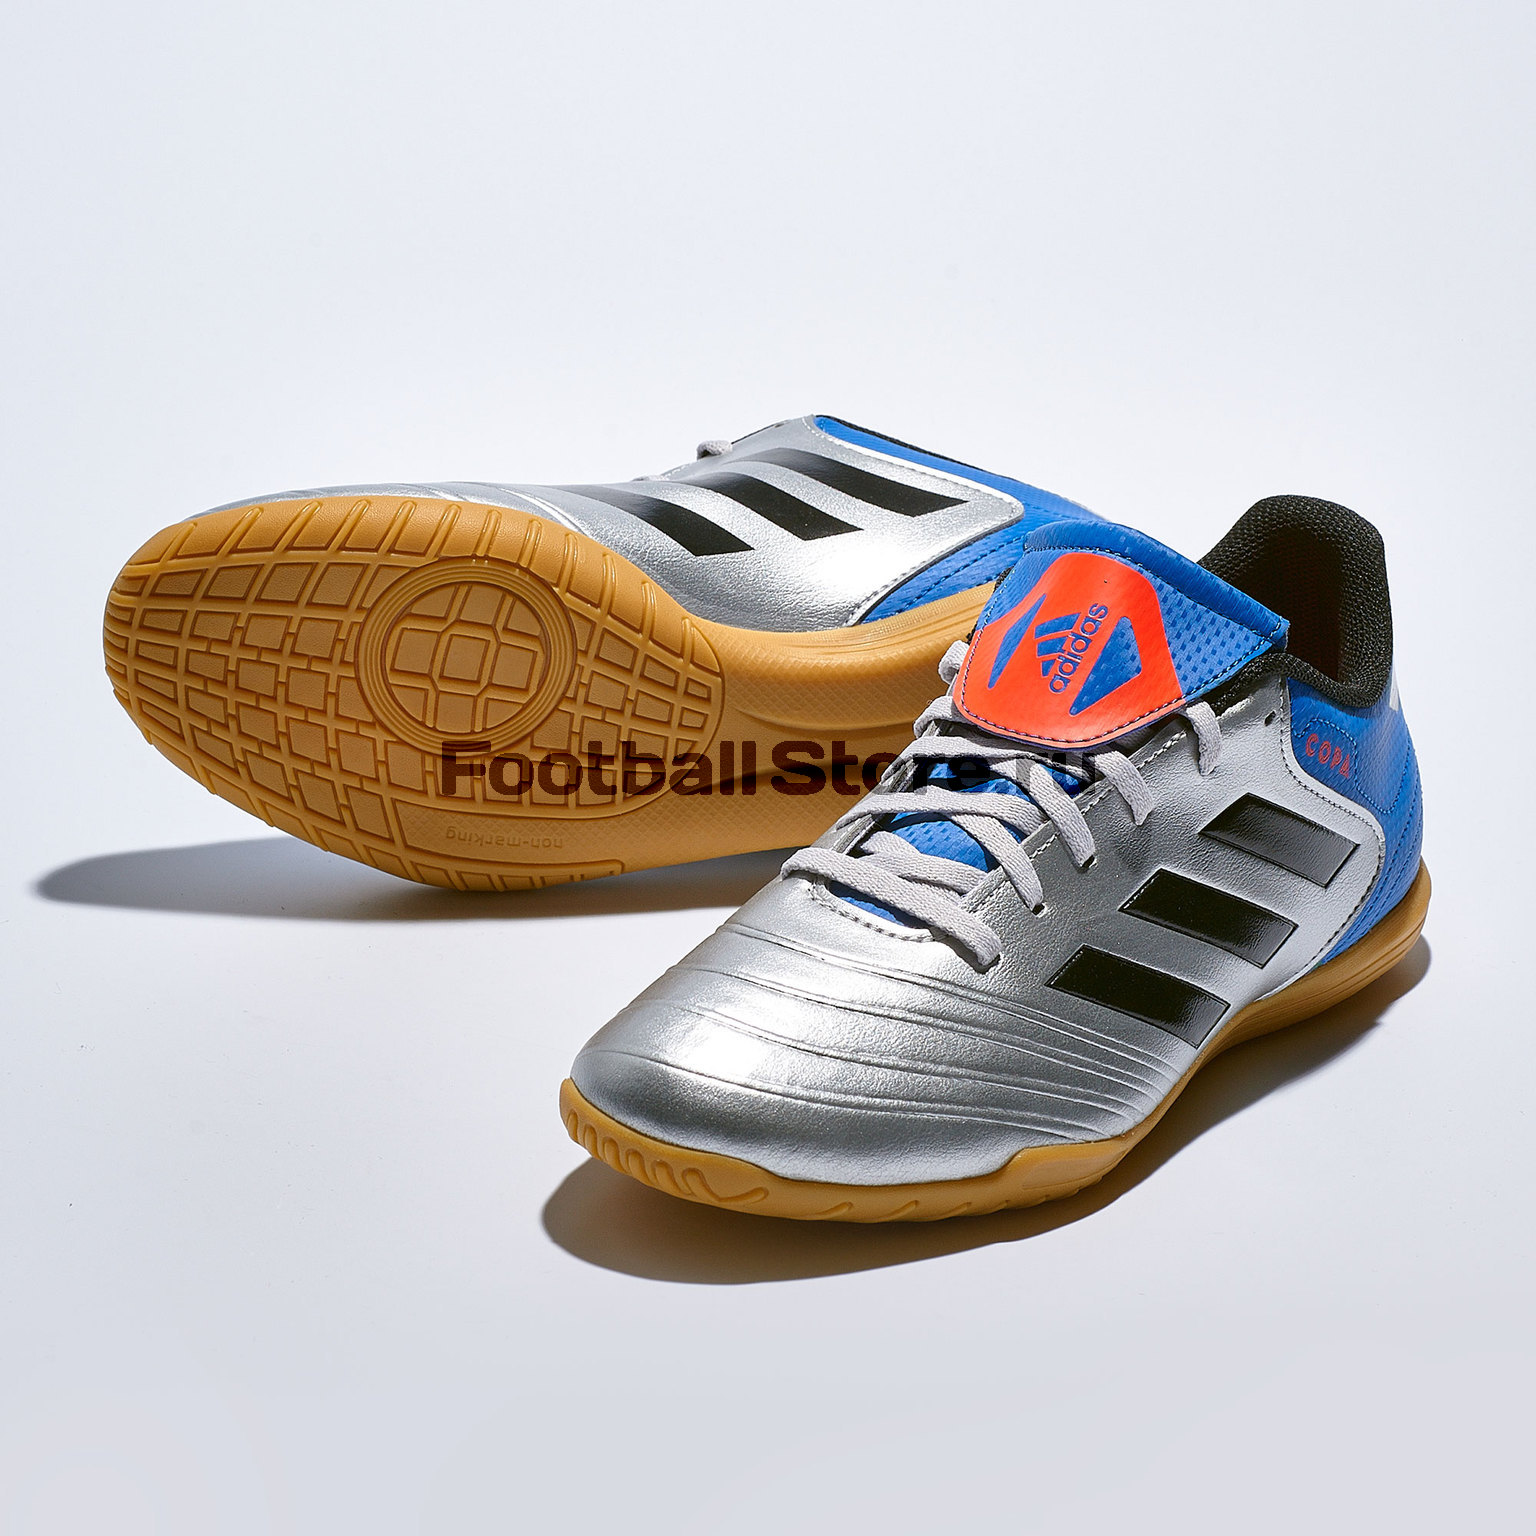 Футзалки Adidas Сopa Tango 18.4 IN DB2448 bt sport minimum broadband speed